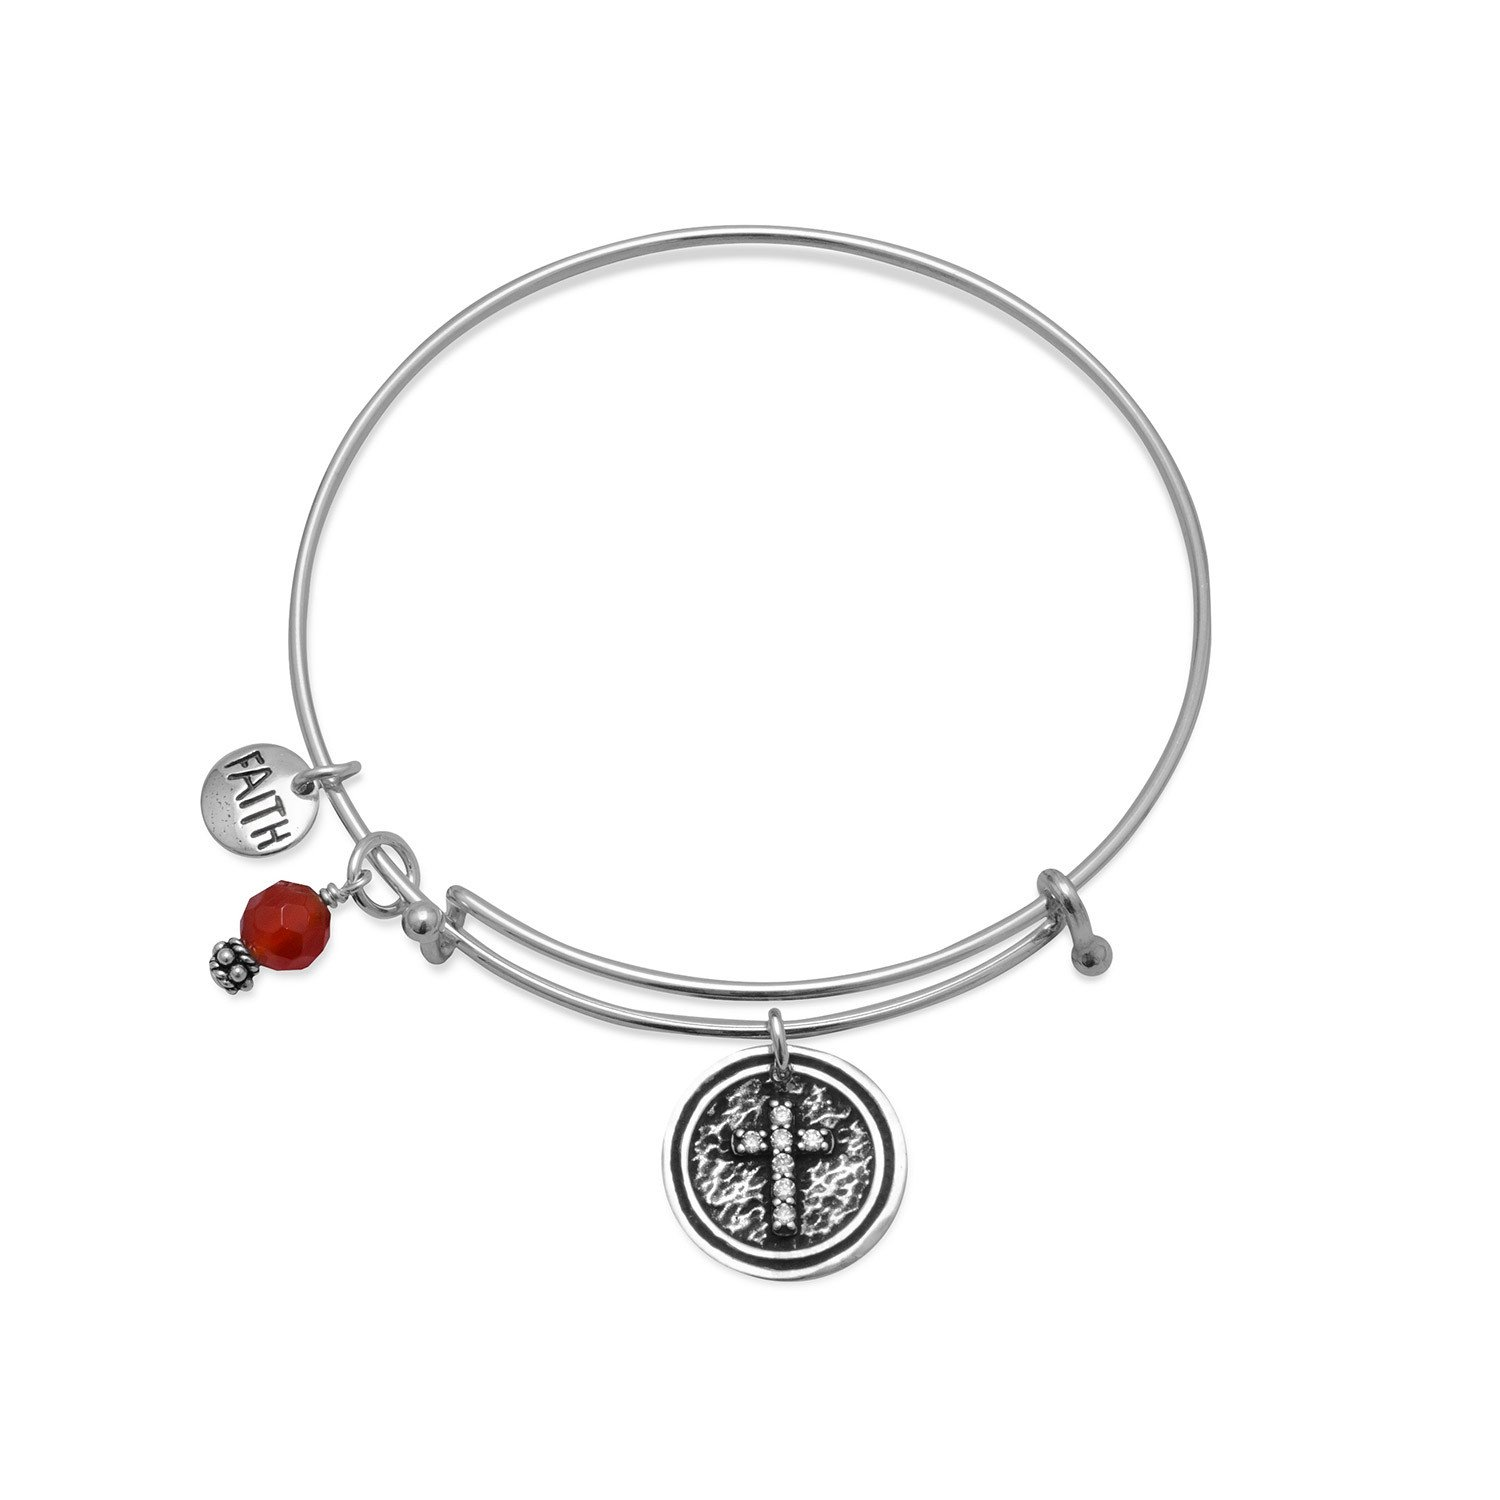 Expandable Multicharm Faith Bangle Bracelet